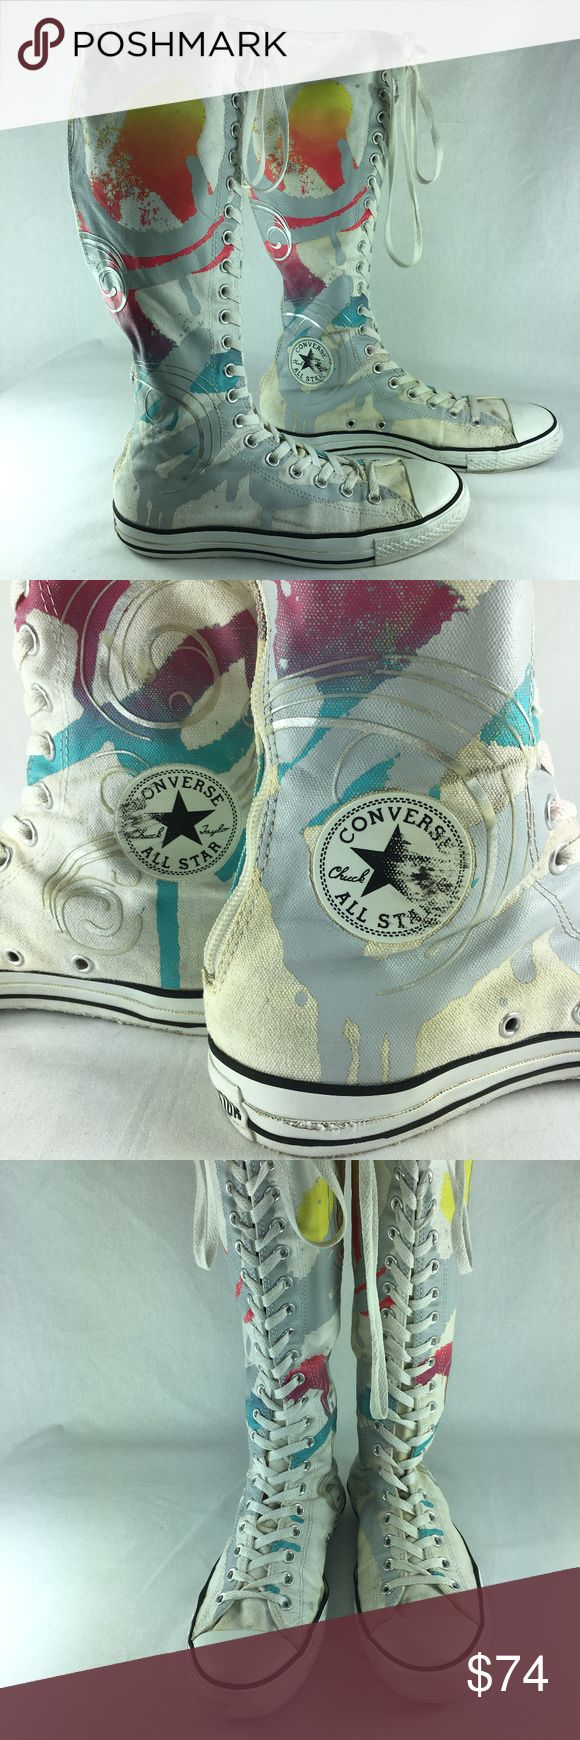 Converse CT Swirl XX Hi Top Knee High Sneakers Converse All Star Chuck Taylor CT Swirl XXHi sneakers in white/multi. Women's Size 10, men's Size 8, EUR Size 41.5. Canvas knee-high sneakers lace up the front and zip up the back. Off white ground with silver metallic swirls and a paint splatter graffiti print. Very good pre-owned condition with light wear. All Star patches at ankles are smudged and worn as is All Star logo on heels. Canvas has a few smudges near the rims.  Sneakers measure…